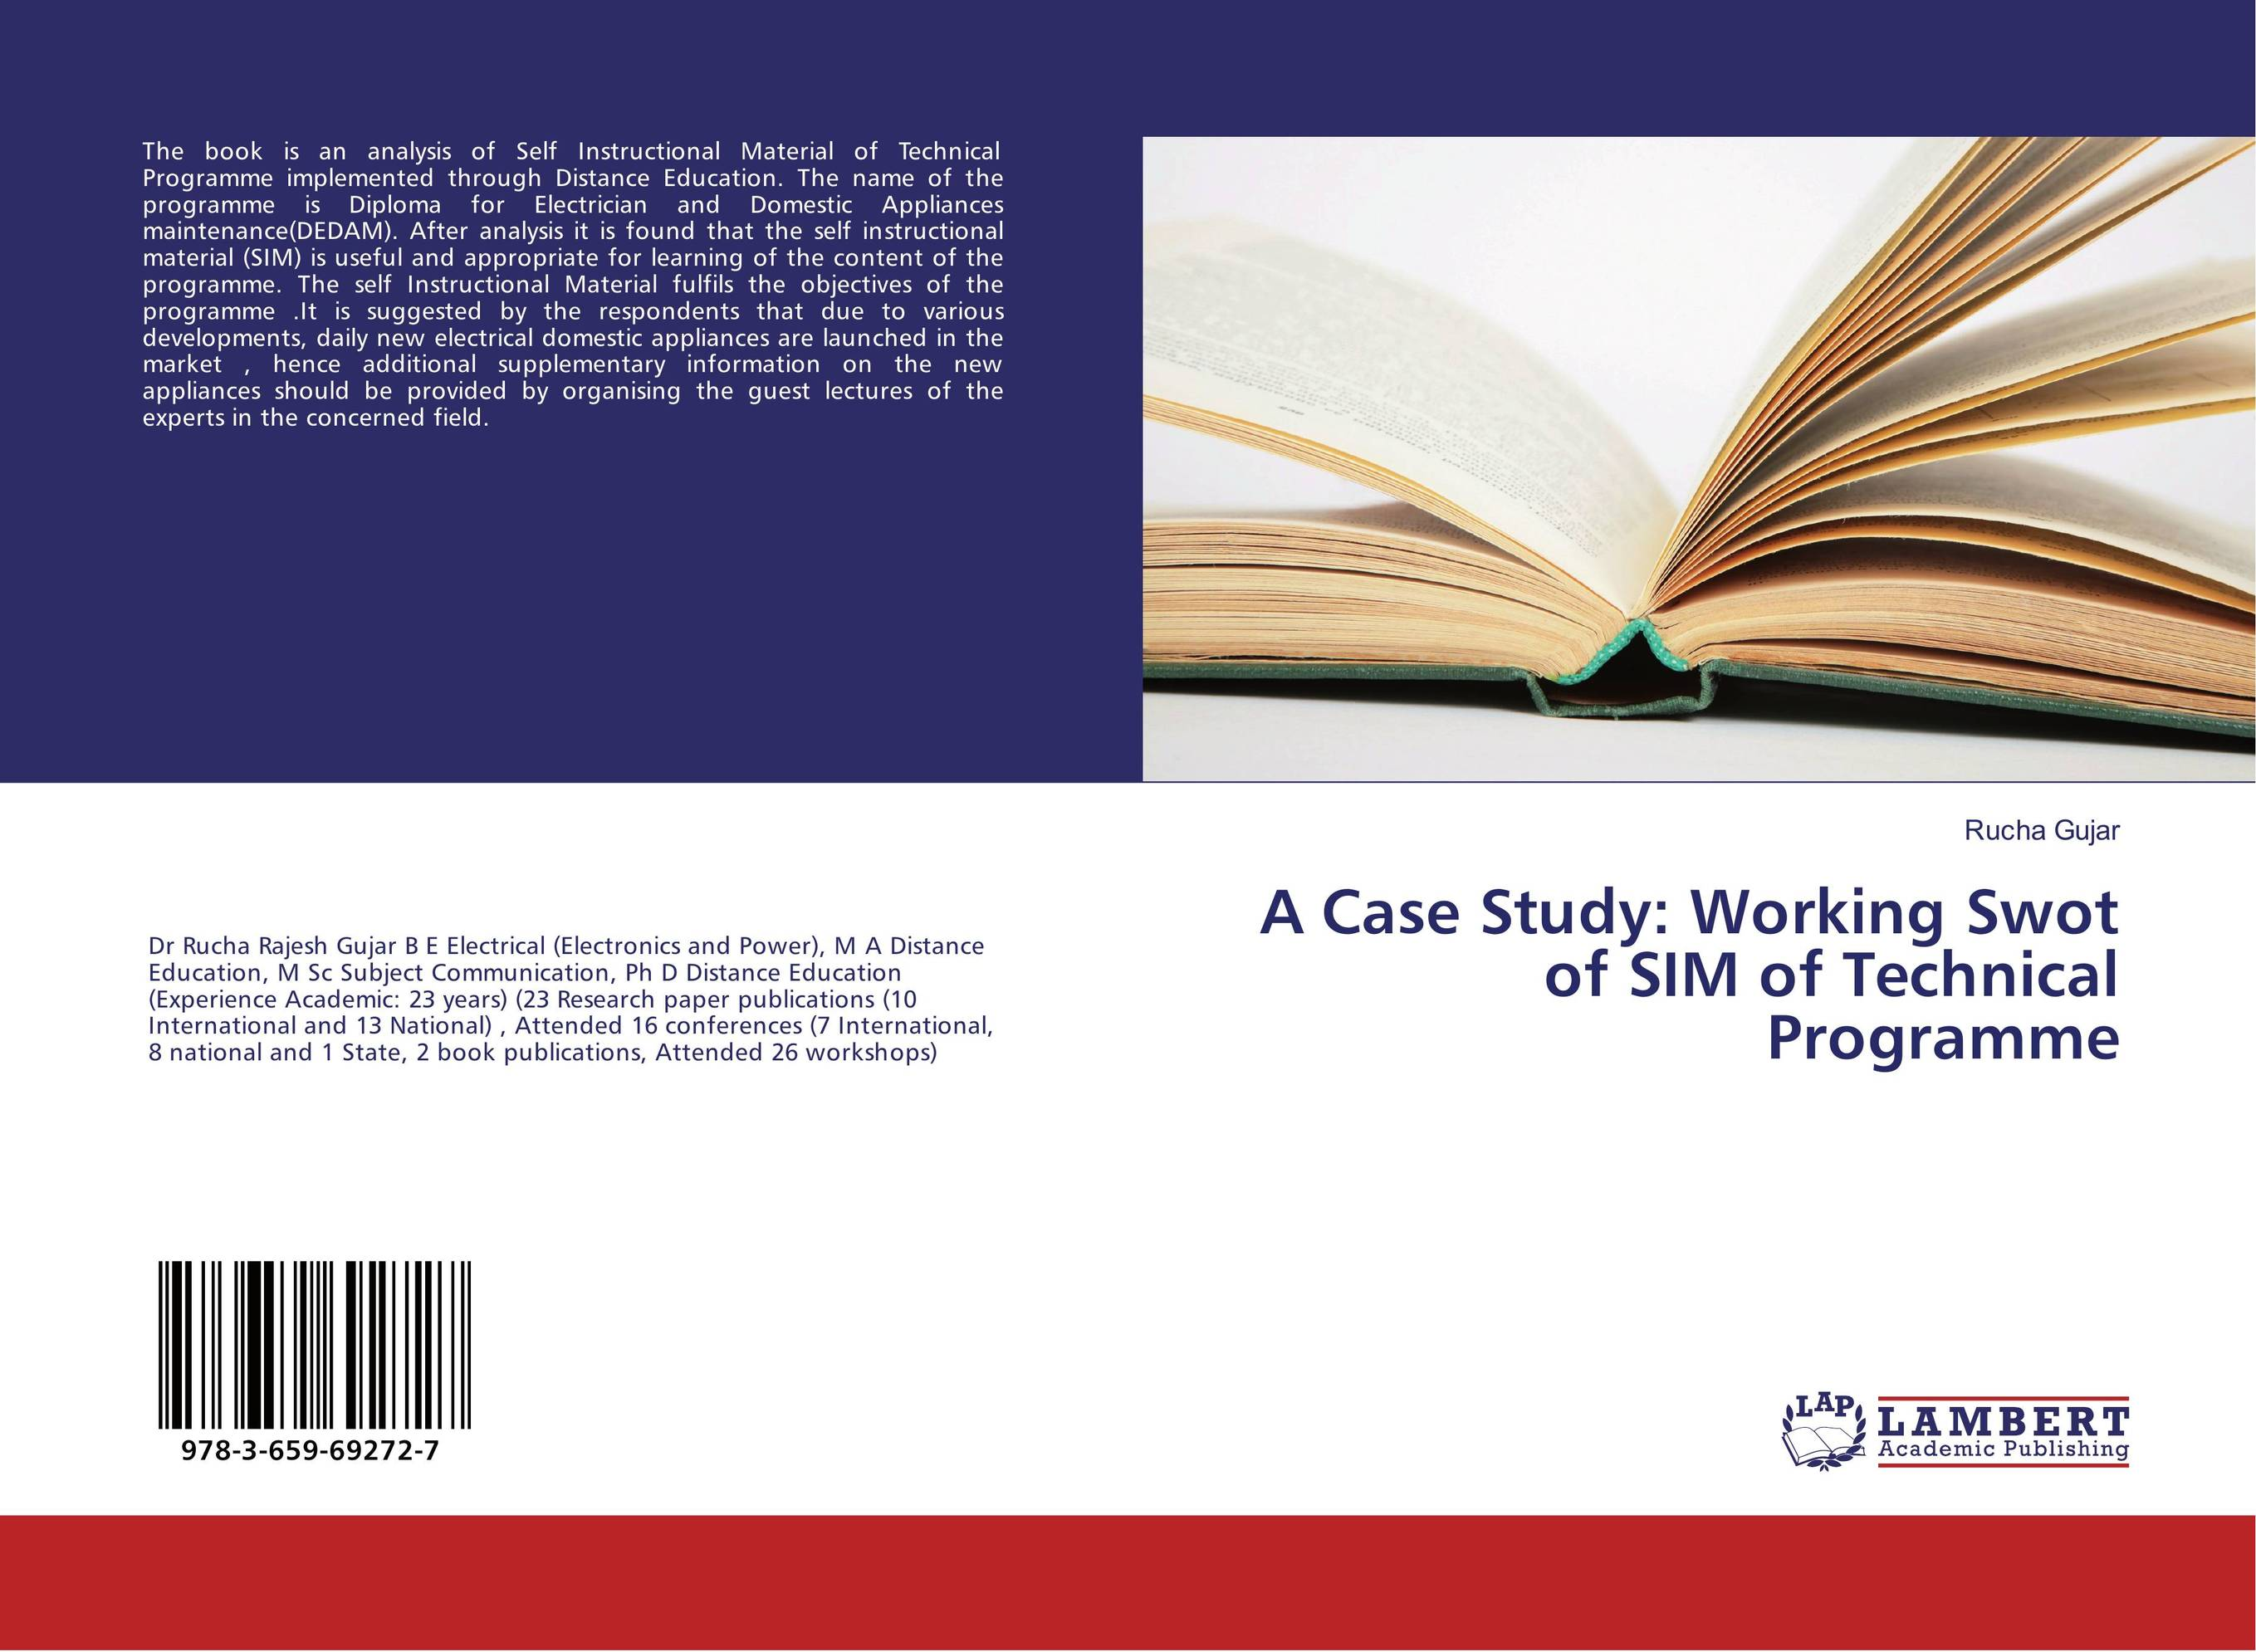 A Case Study: Working Swot of SIM of Technical Programme development of self instructional material for distant learners